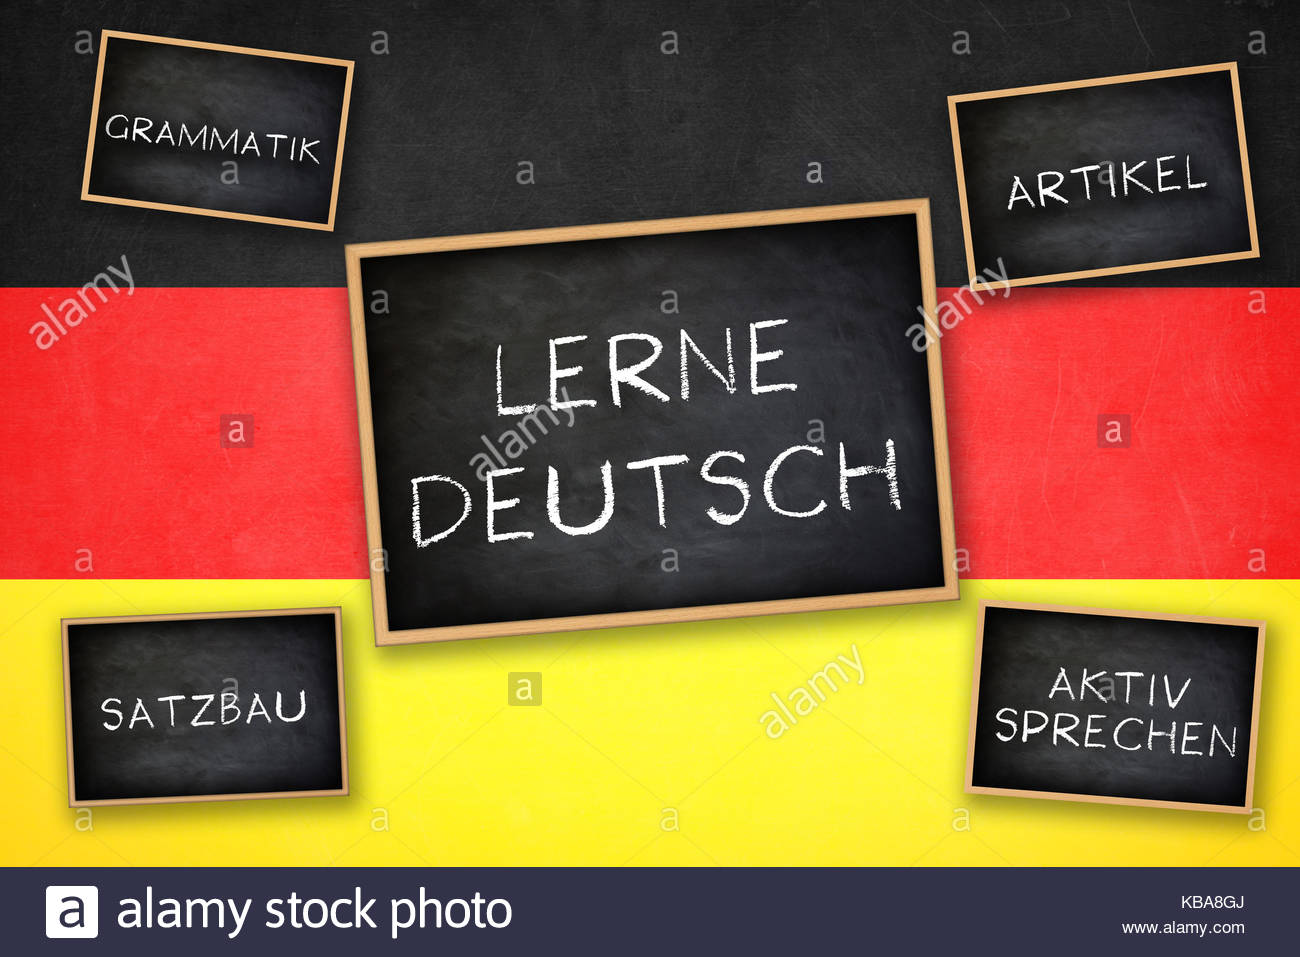 Learn German - Grammar Verbs Nouns Speaking - Practice - Stock Image